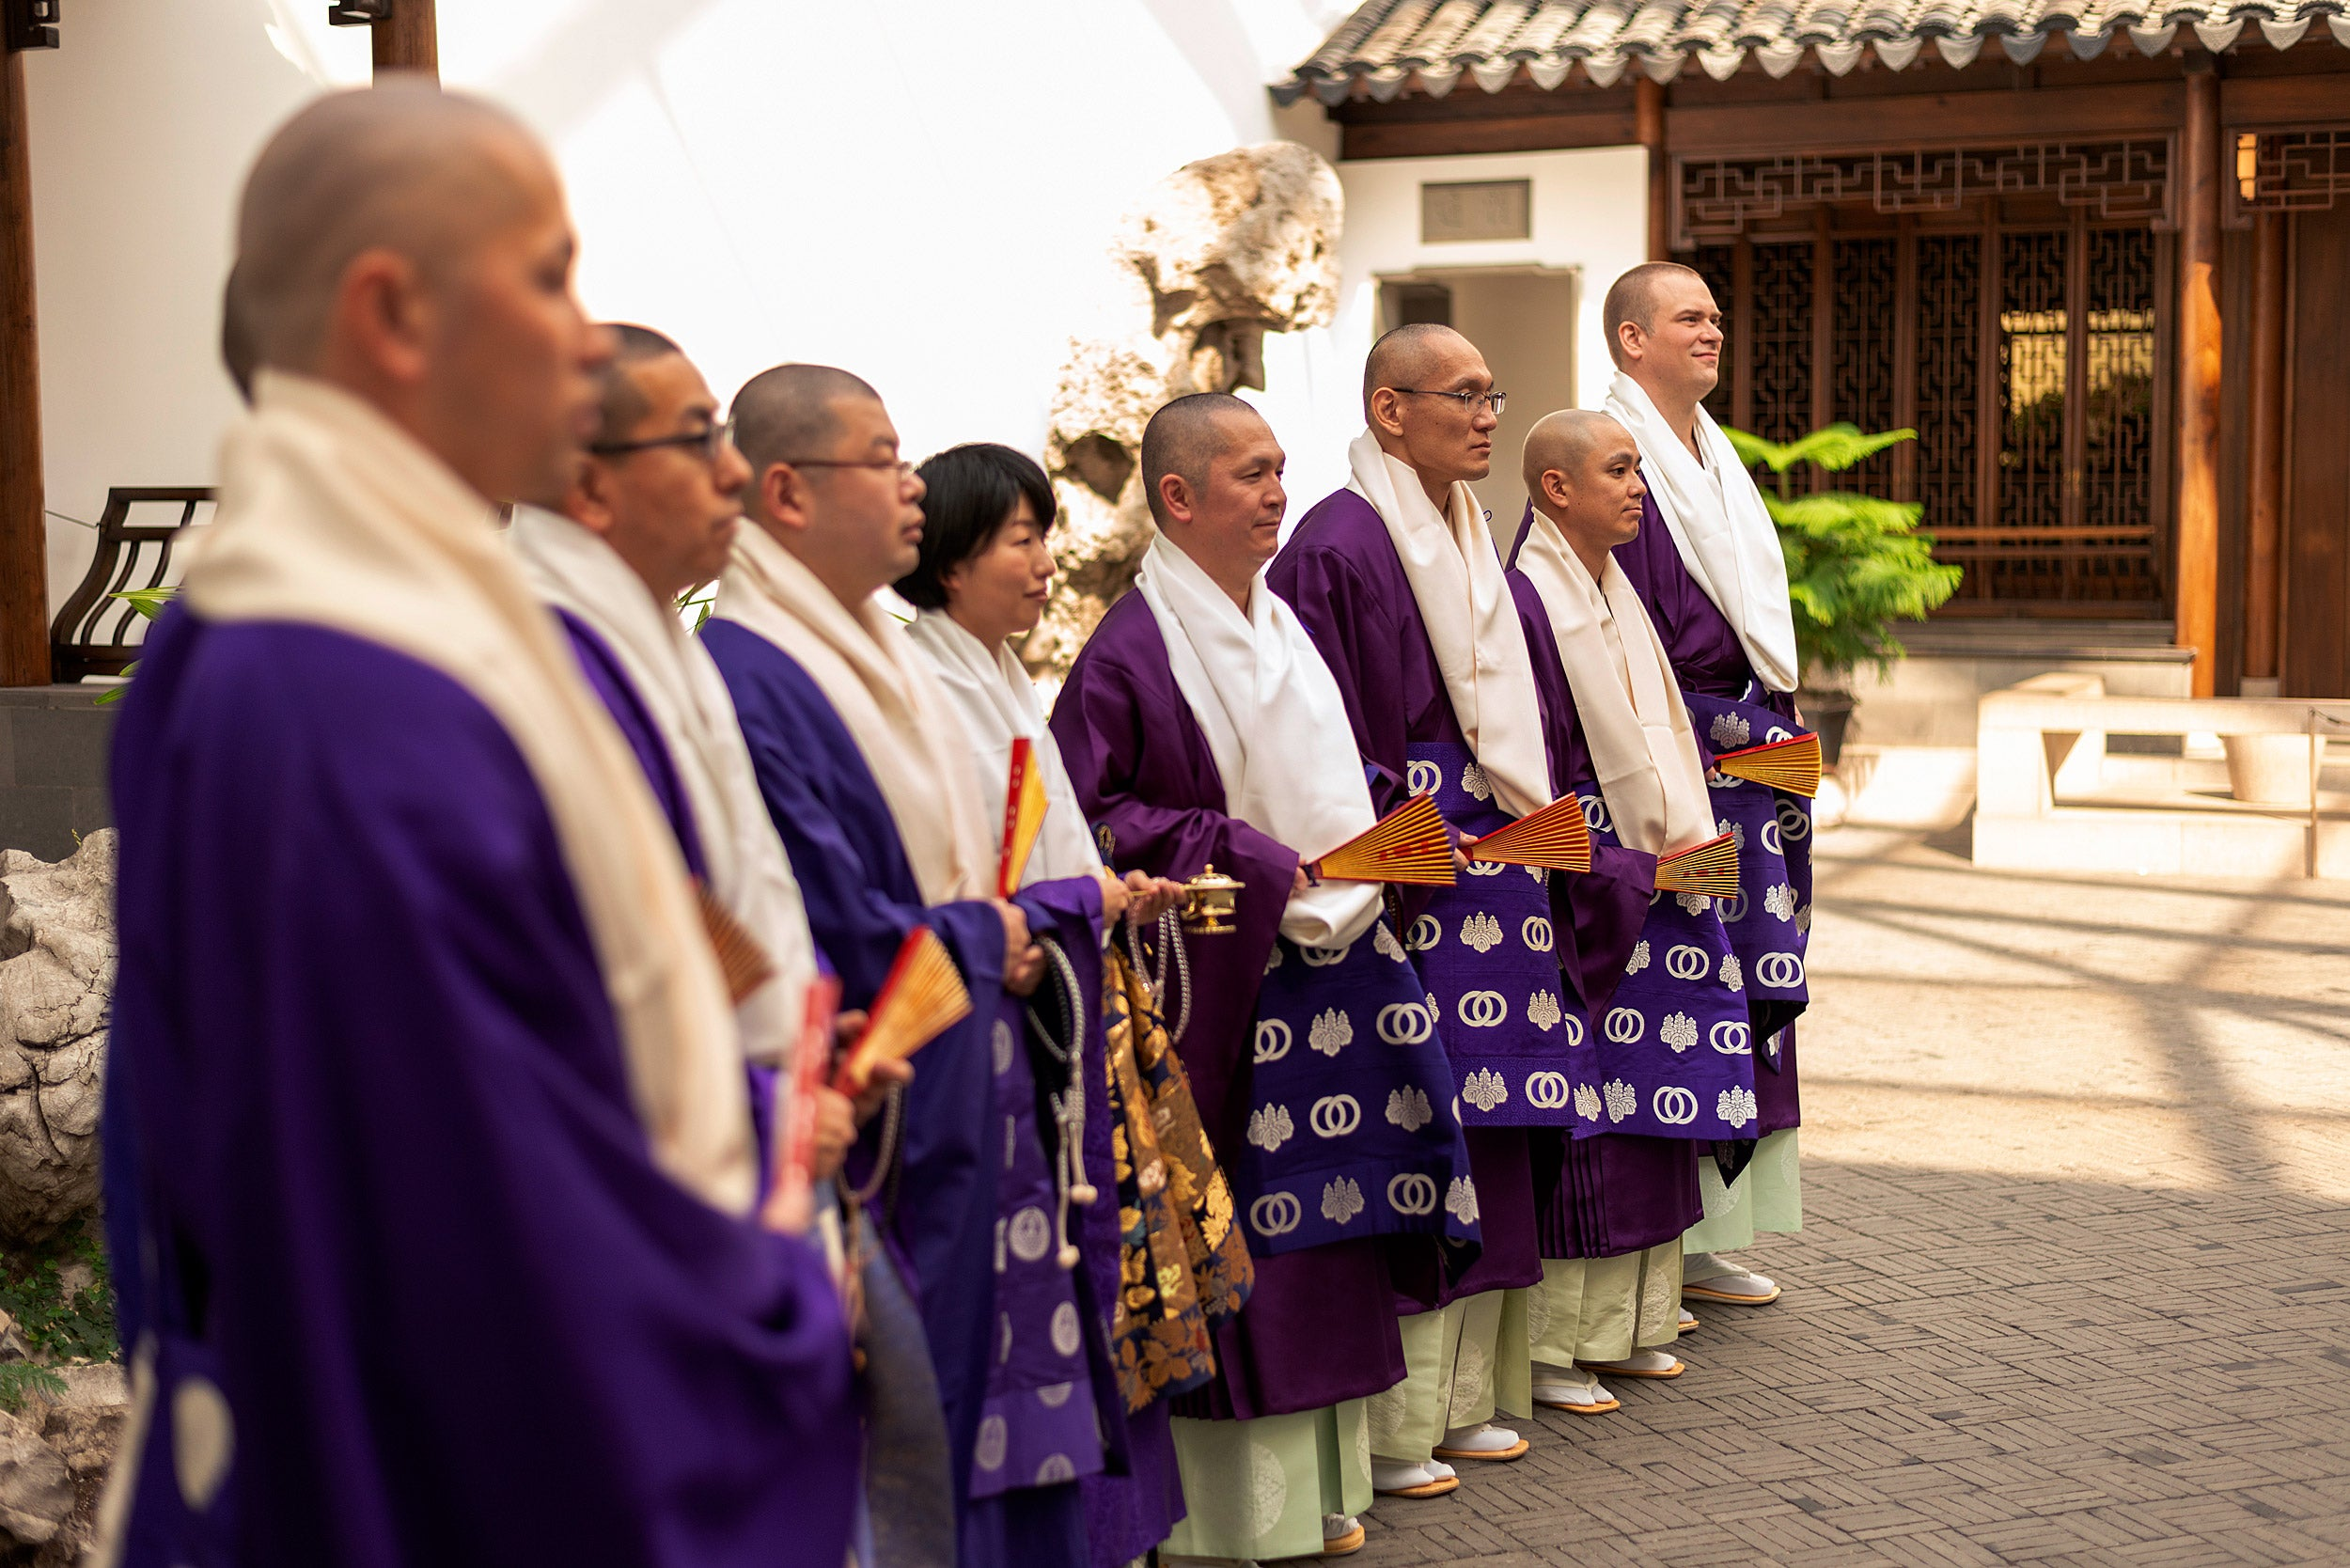 Buddhist priests stand in line during a ceremony